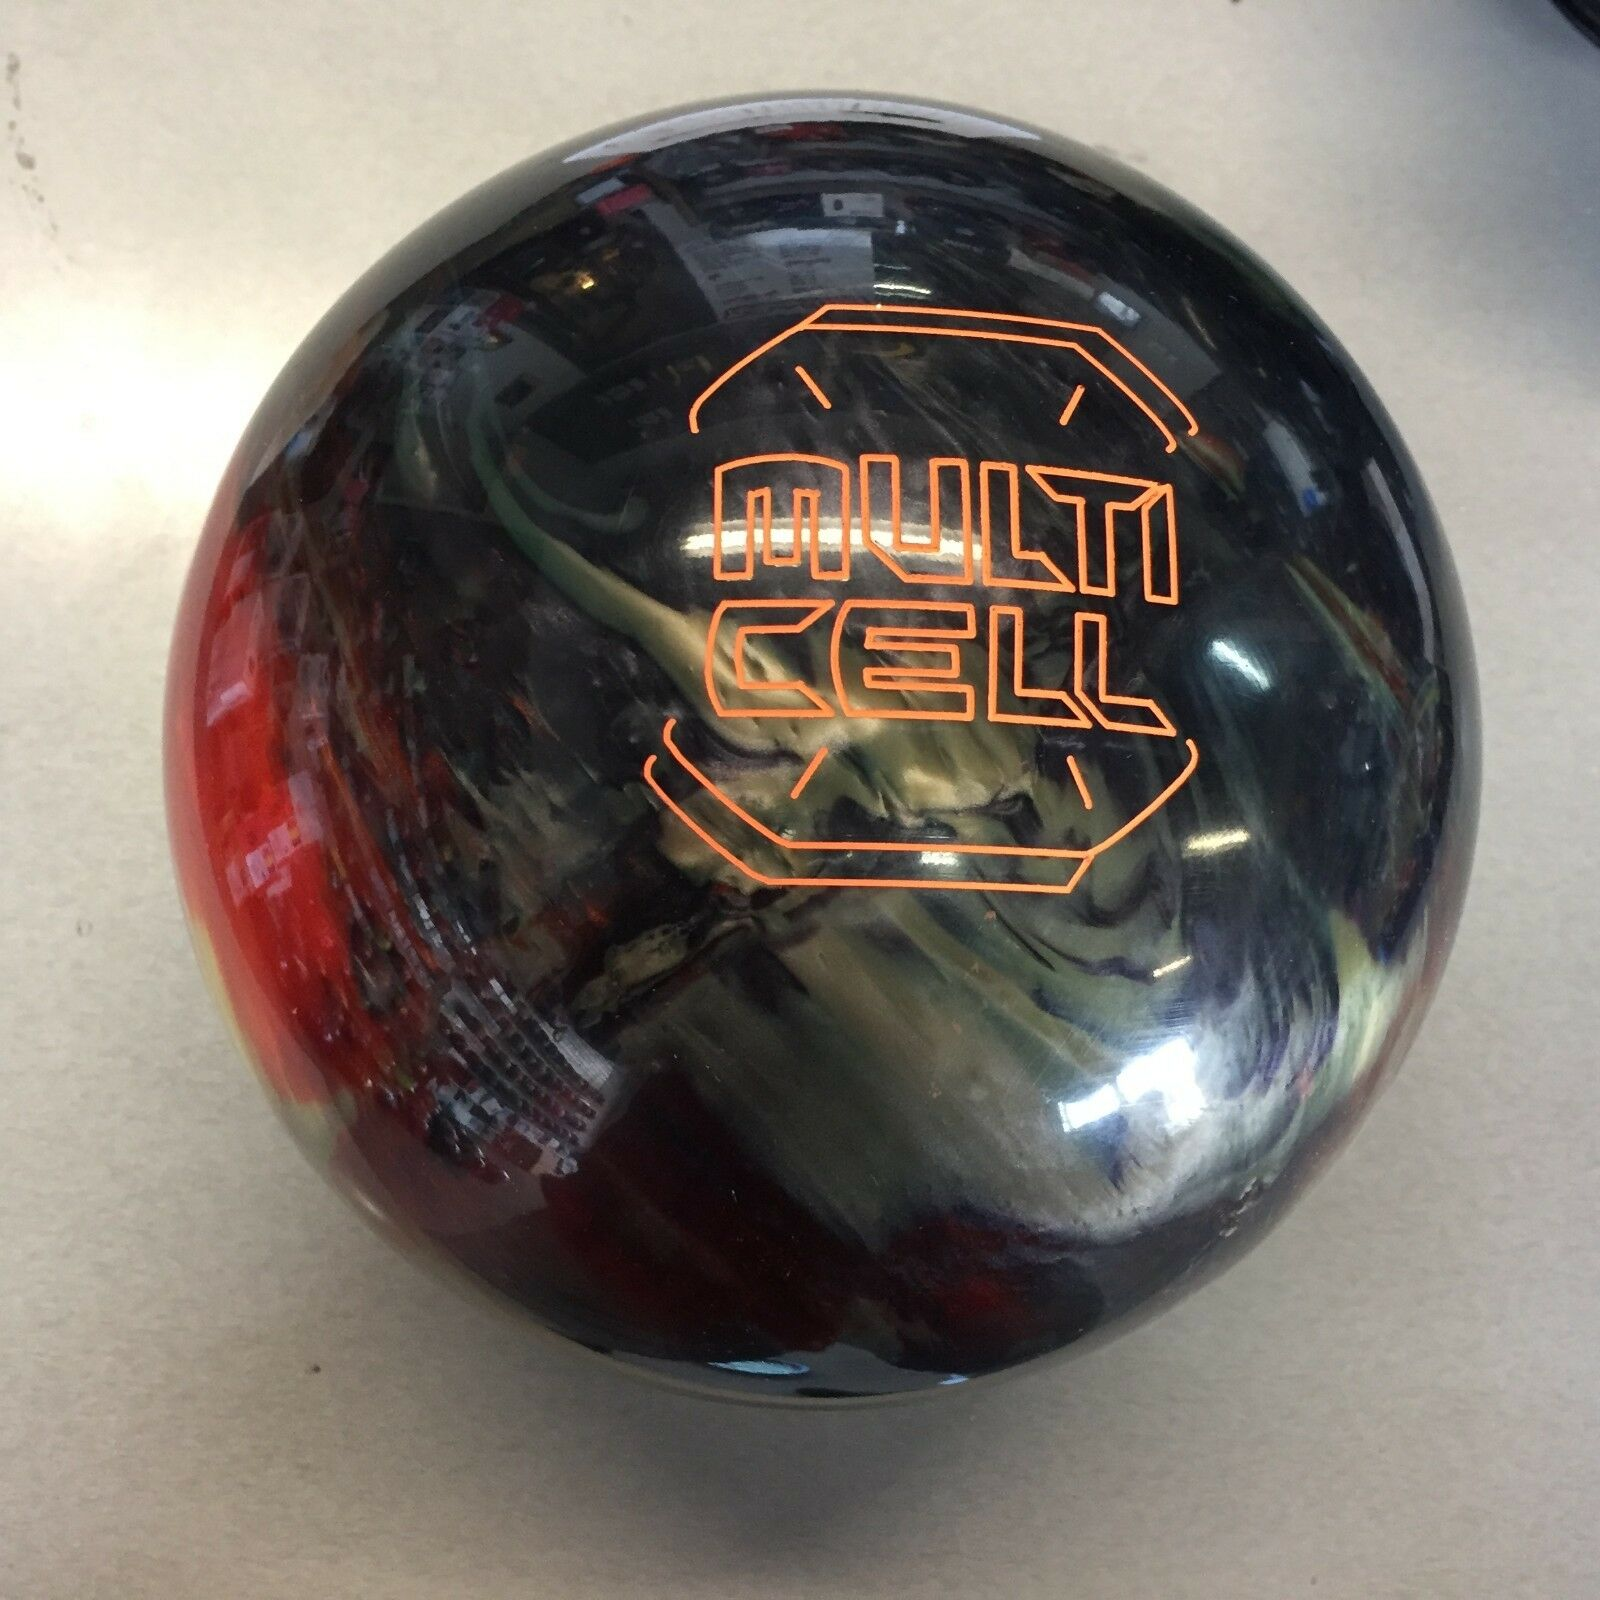 redO GRIP MULTI CELL 1ST QUALITY   bowling  ball 16   LB.   NEW IN BOX